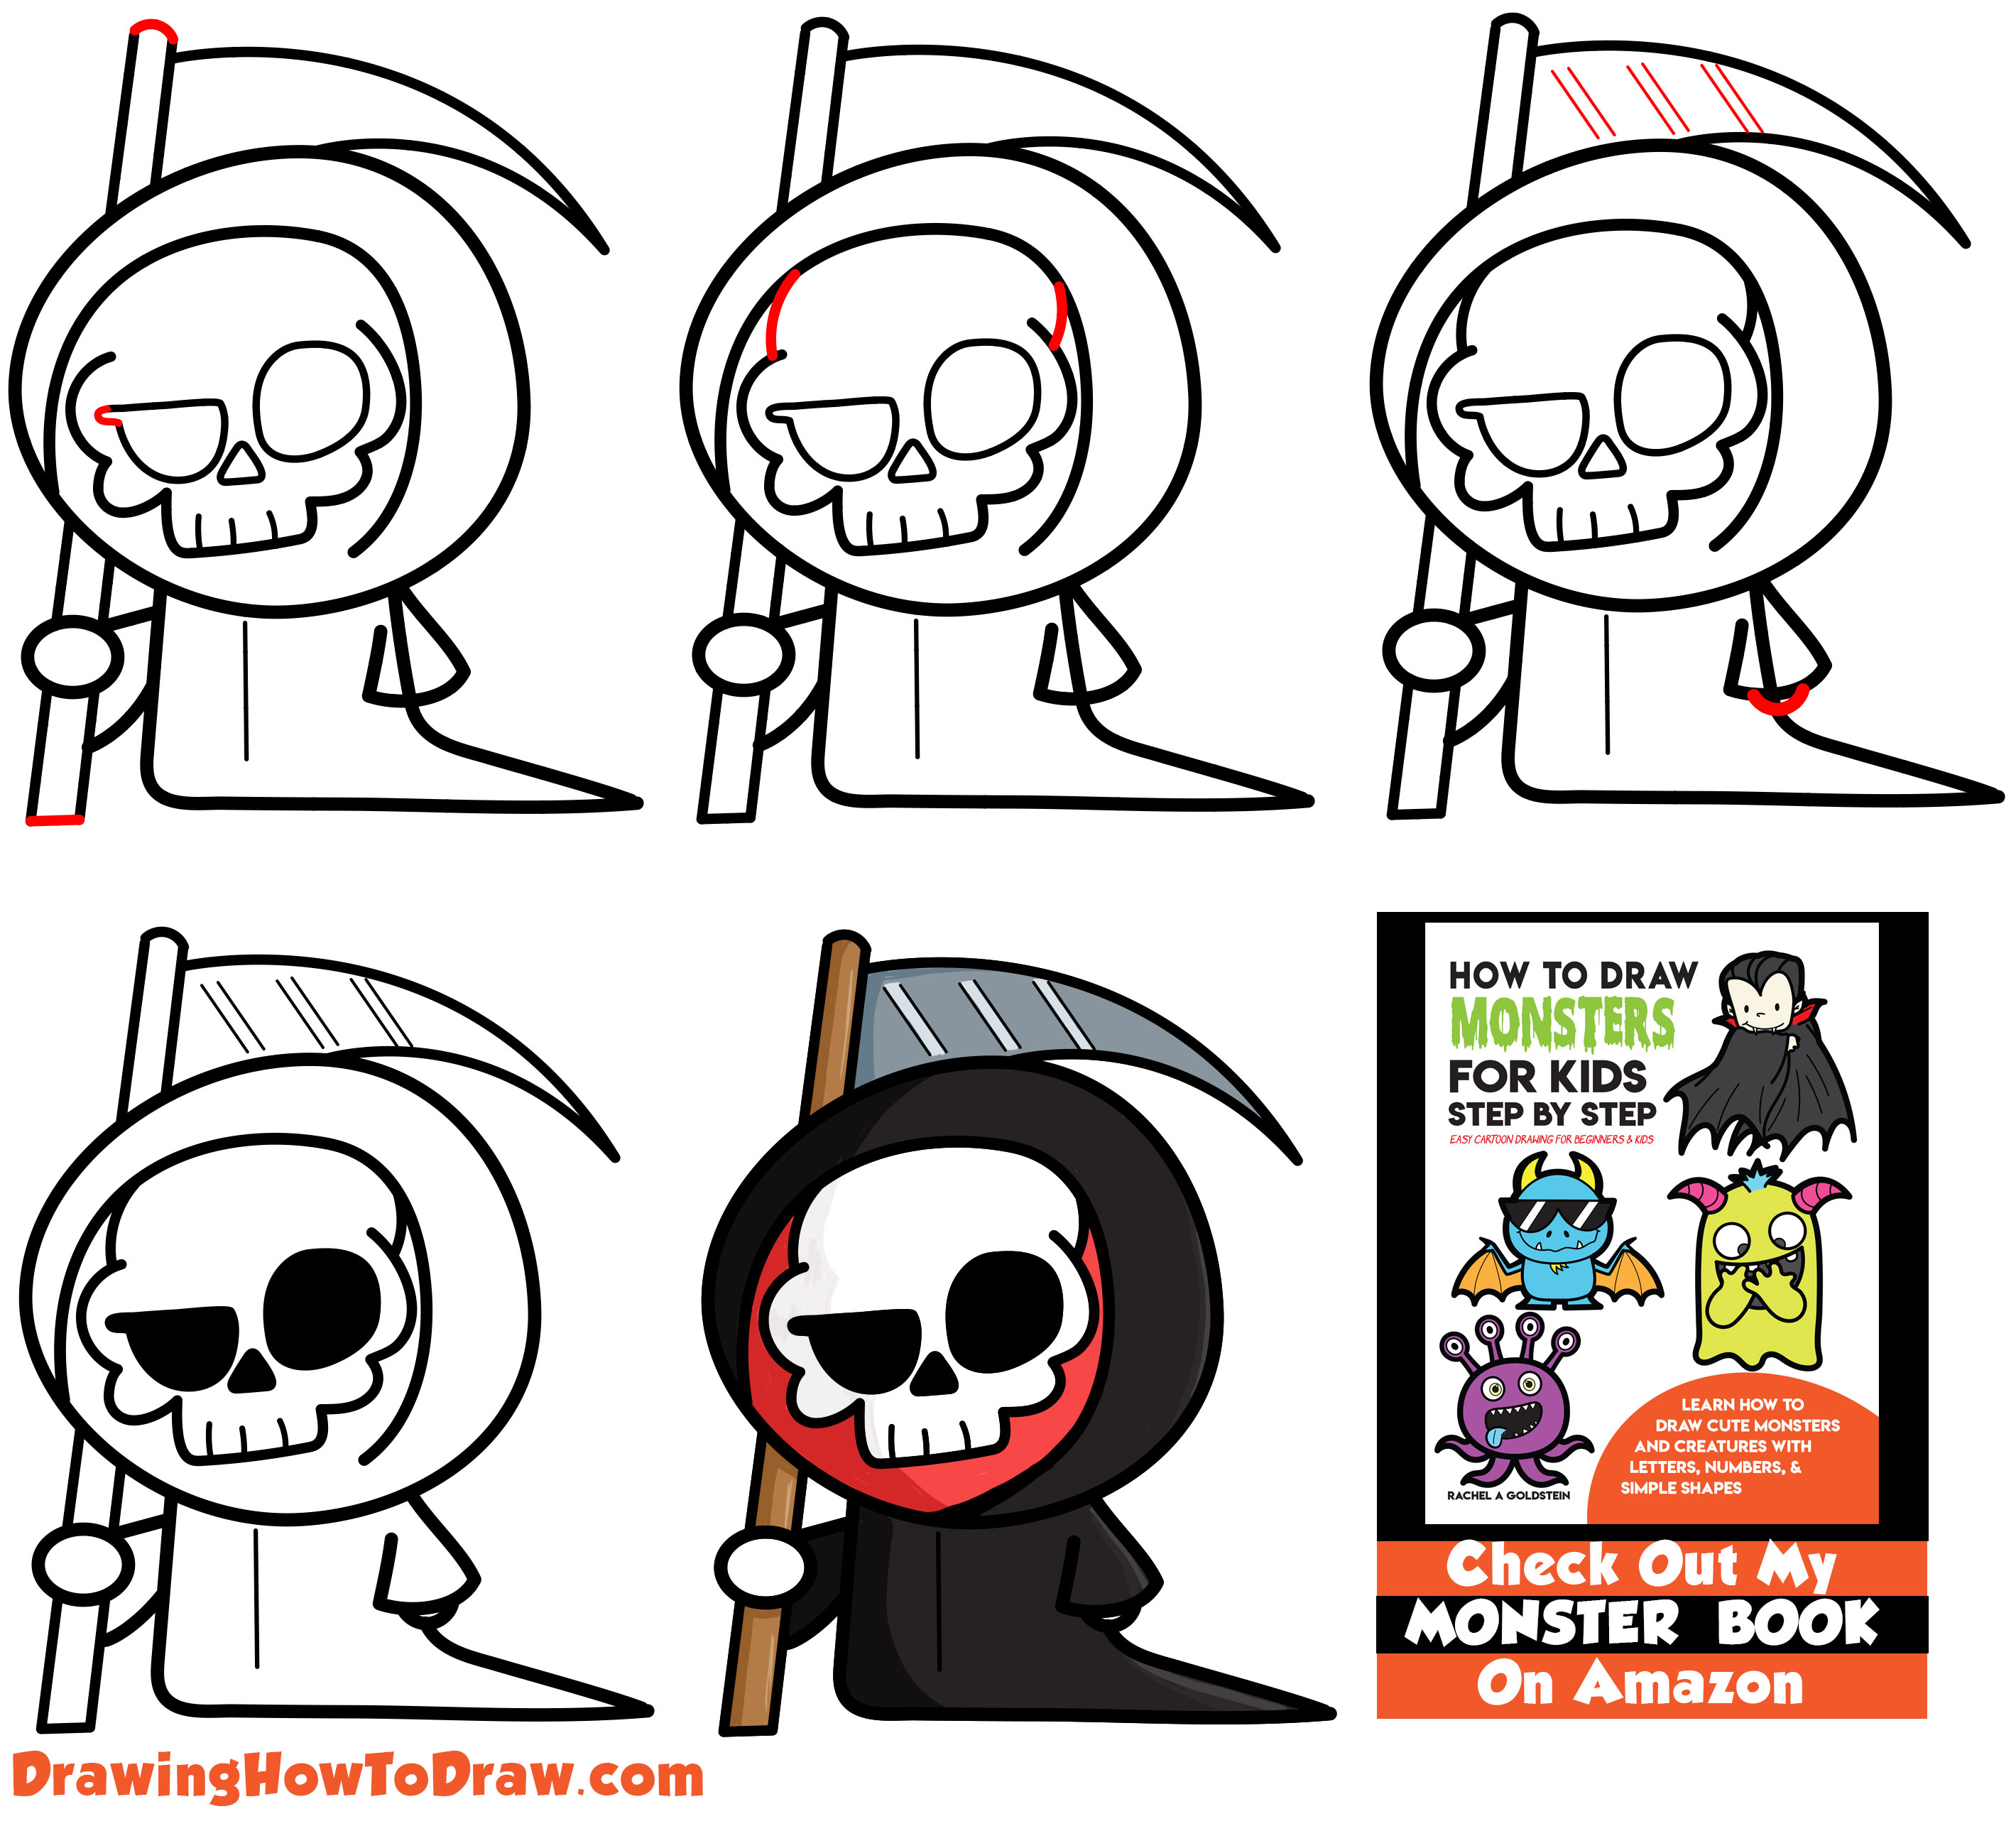 Learn How to Draw a Cute Cartoon Grim Reaper (Kawaii / Chibi) Simple Steps Drawing Lesson for Kids & Beginners